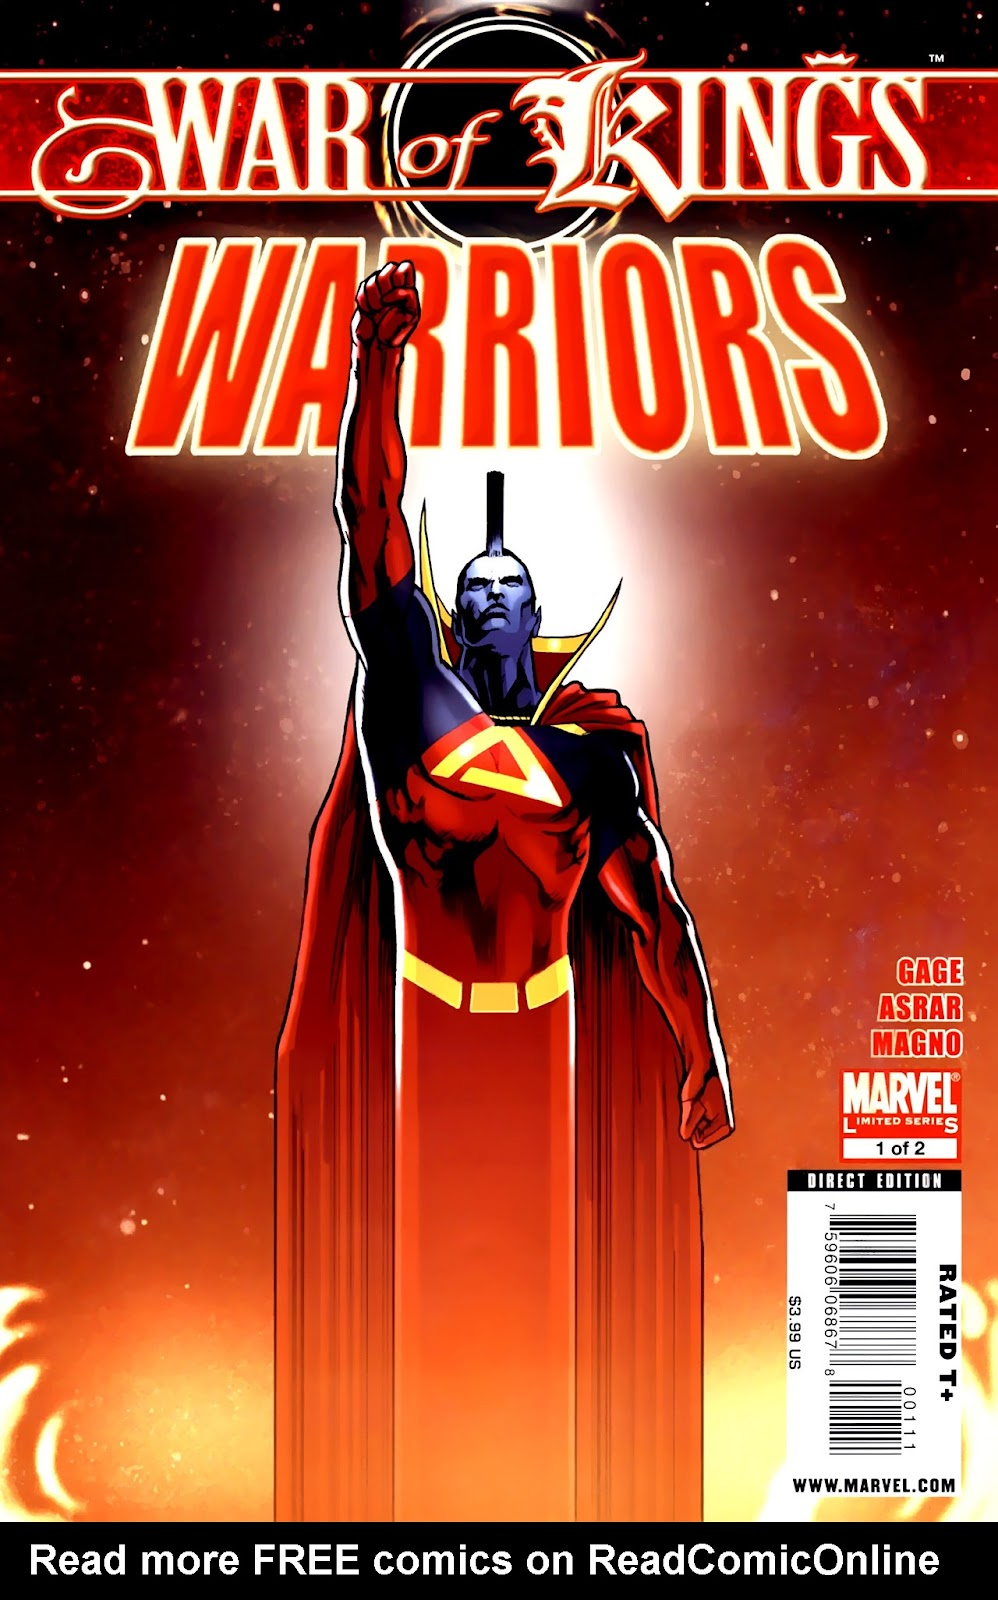 War of Kings: Warriors Issue #1 #1 - English 1